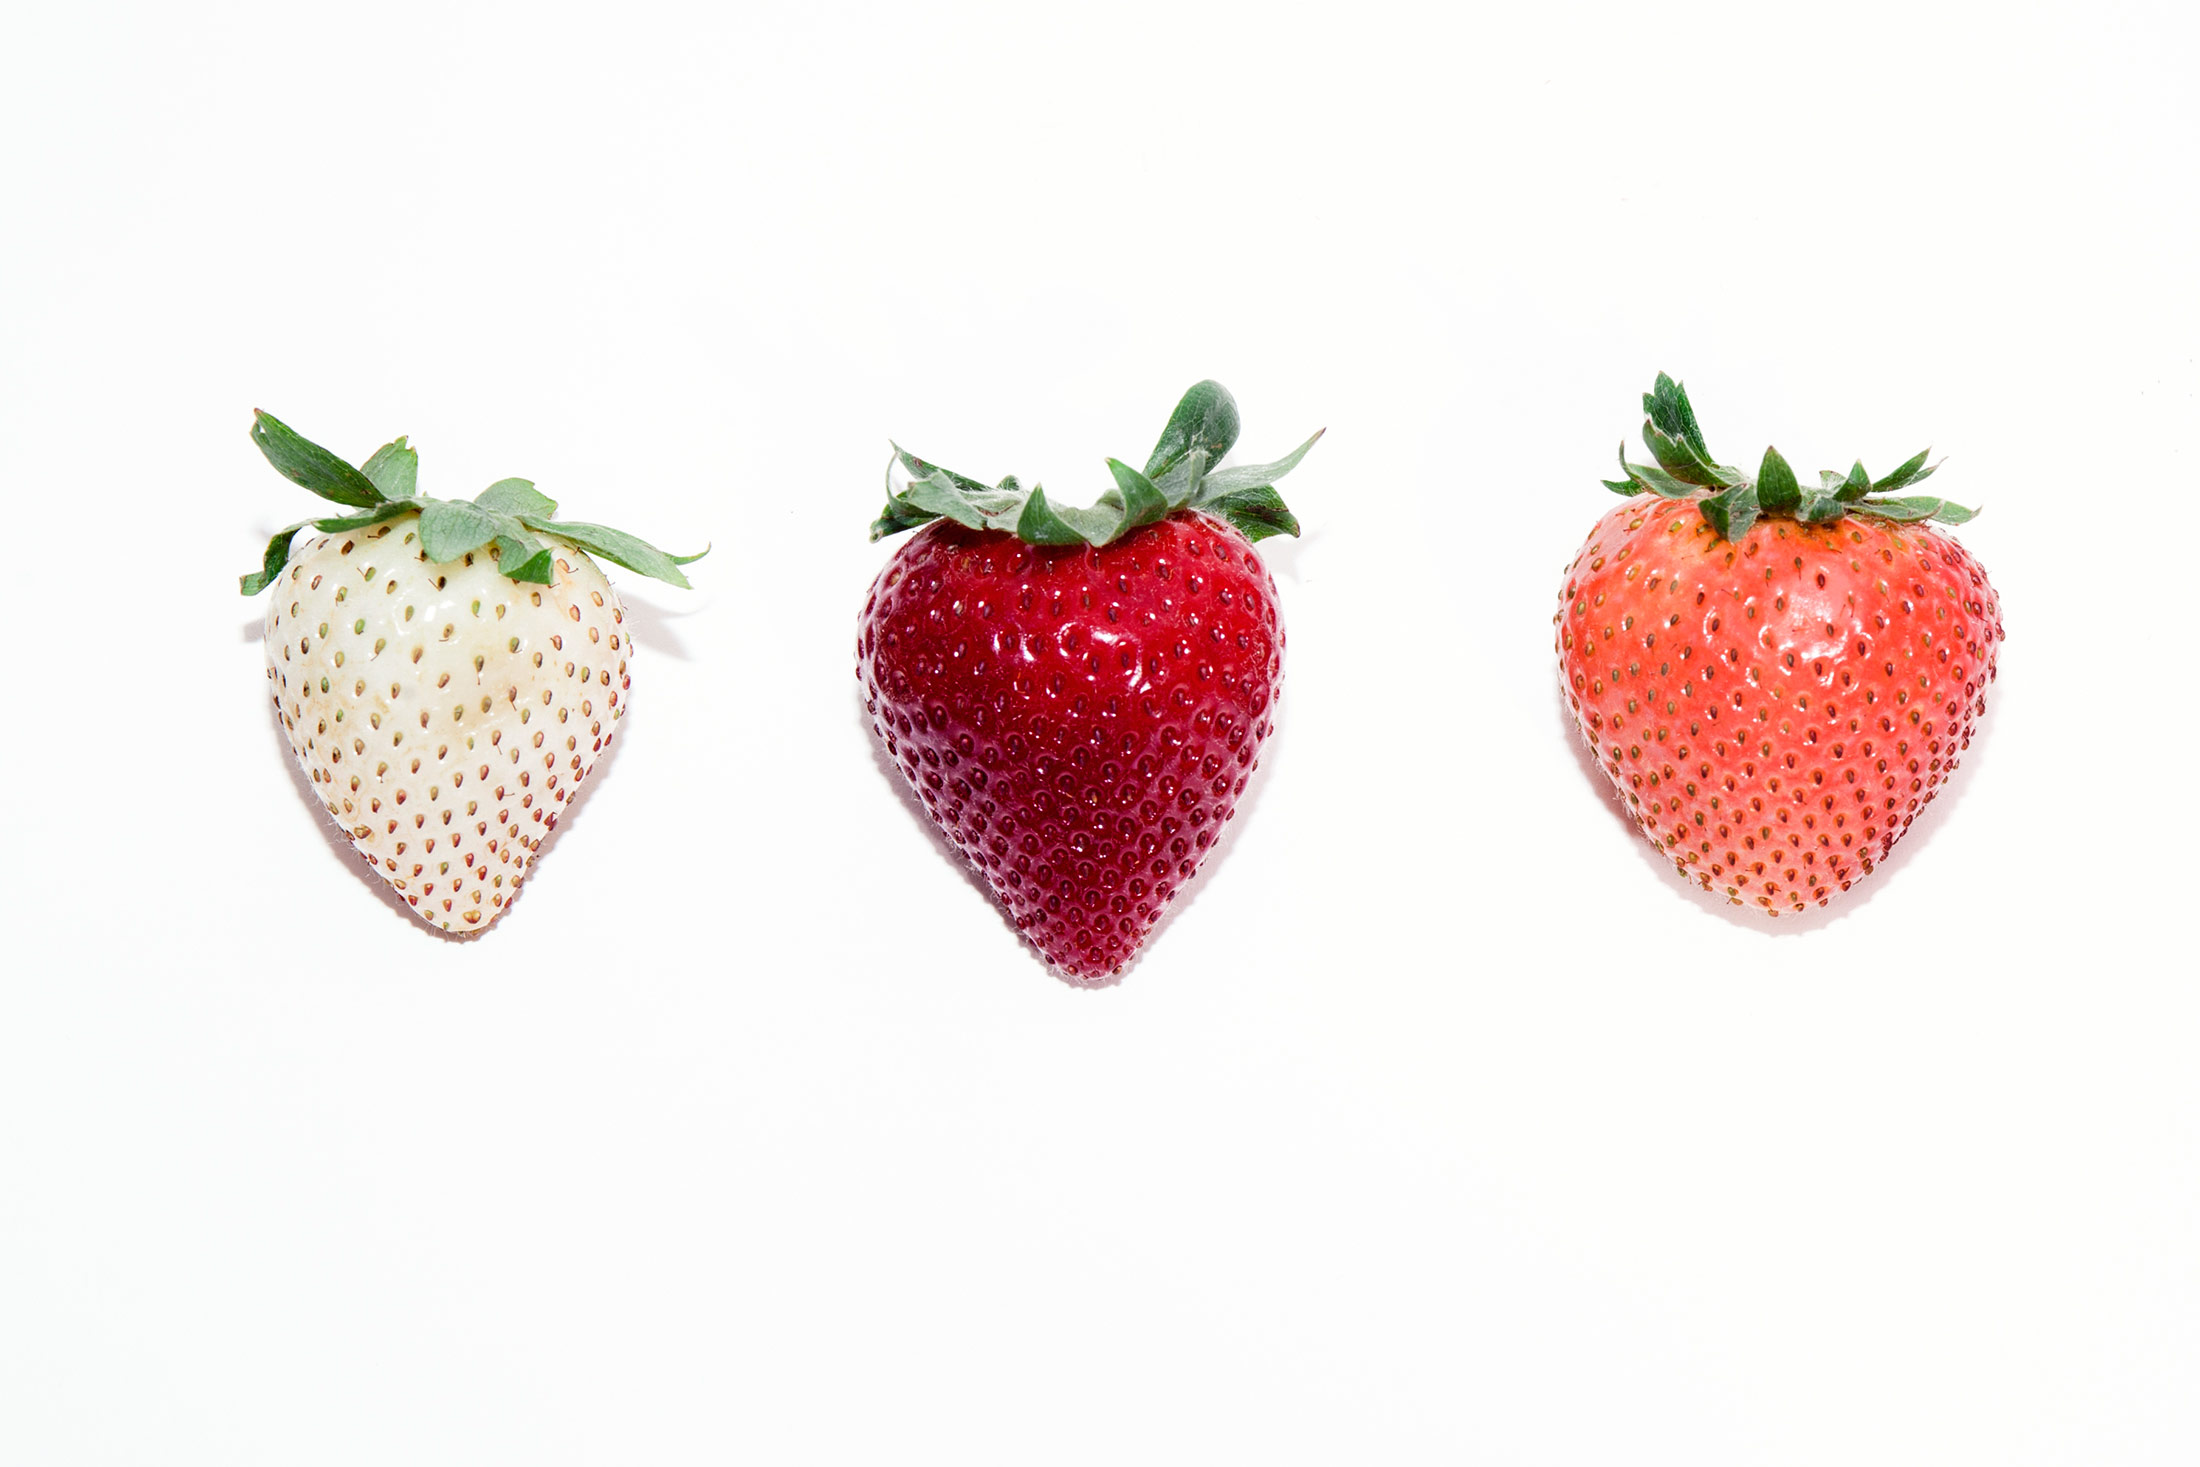 Driscoll's white, red, and pink strawberry varieties.